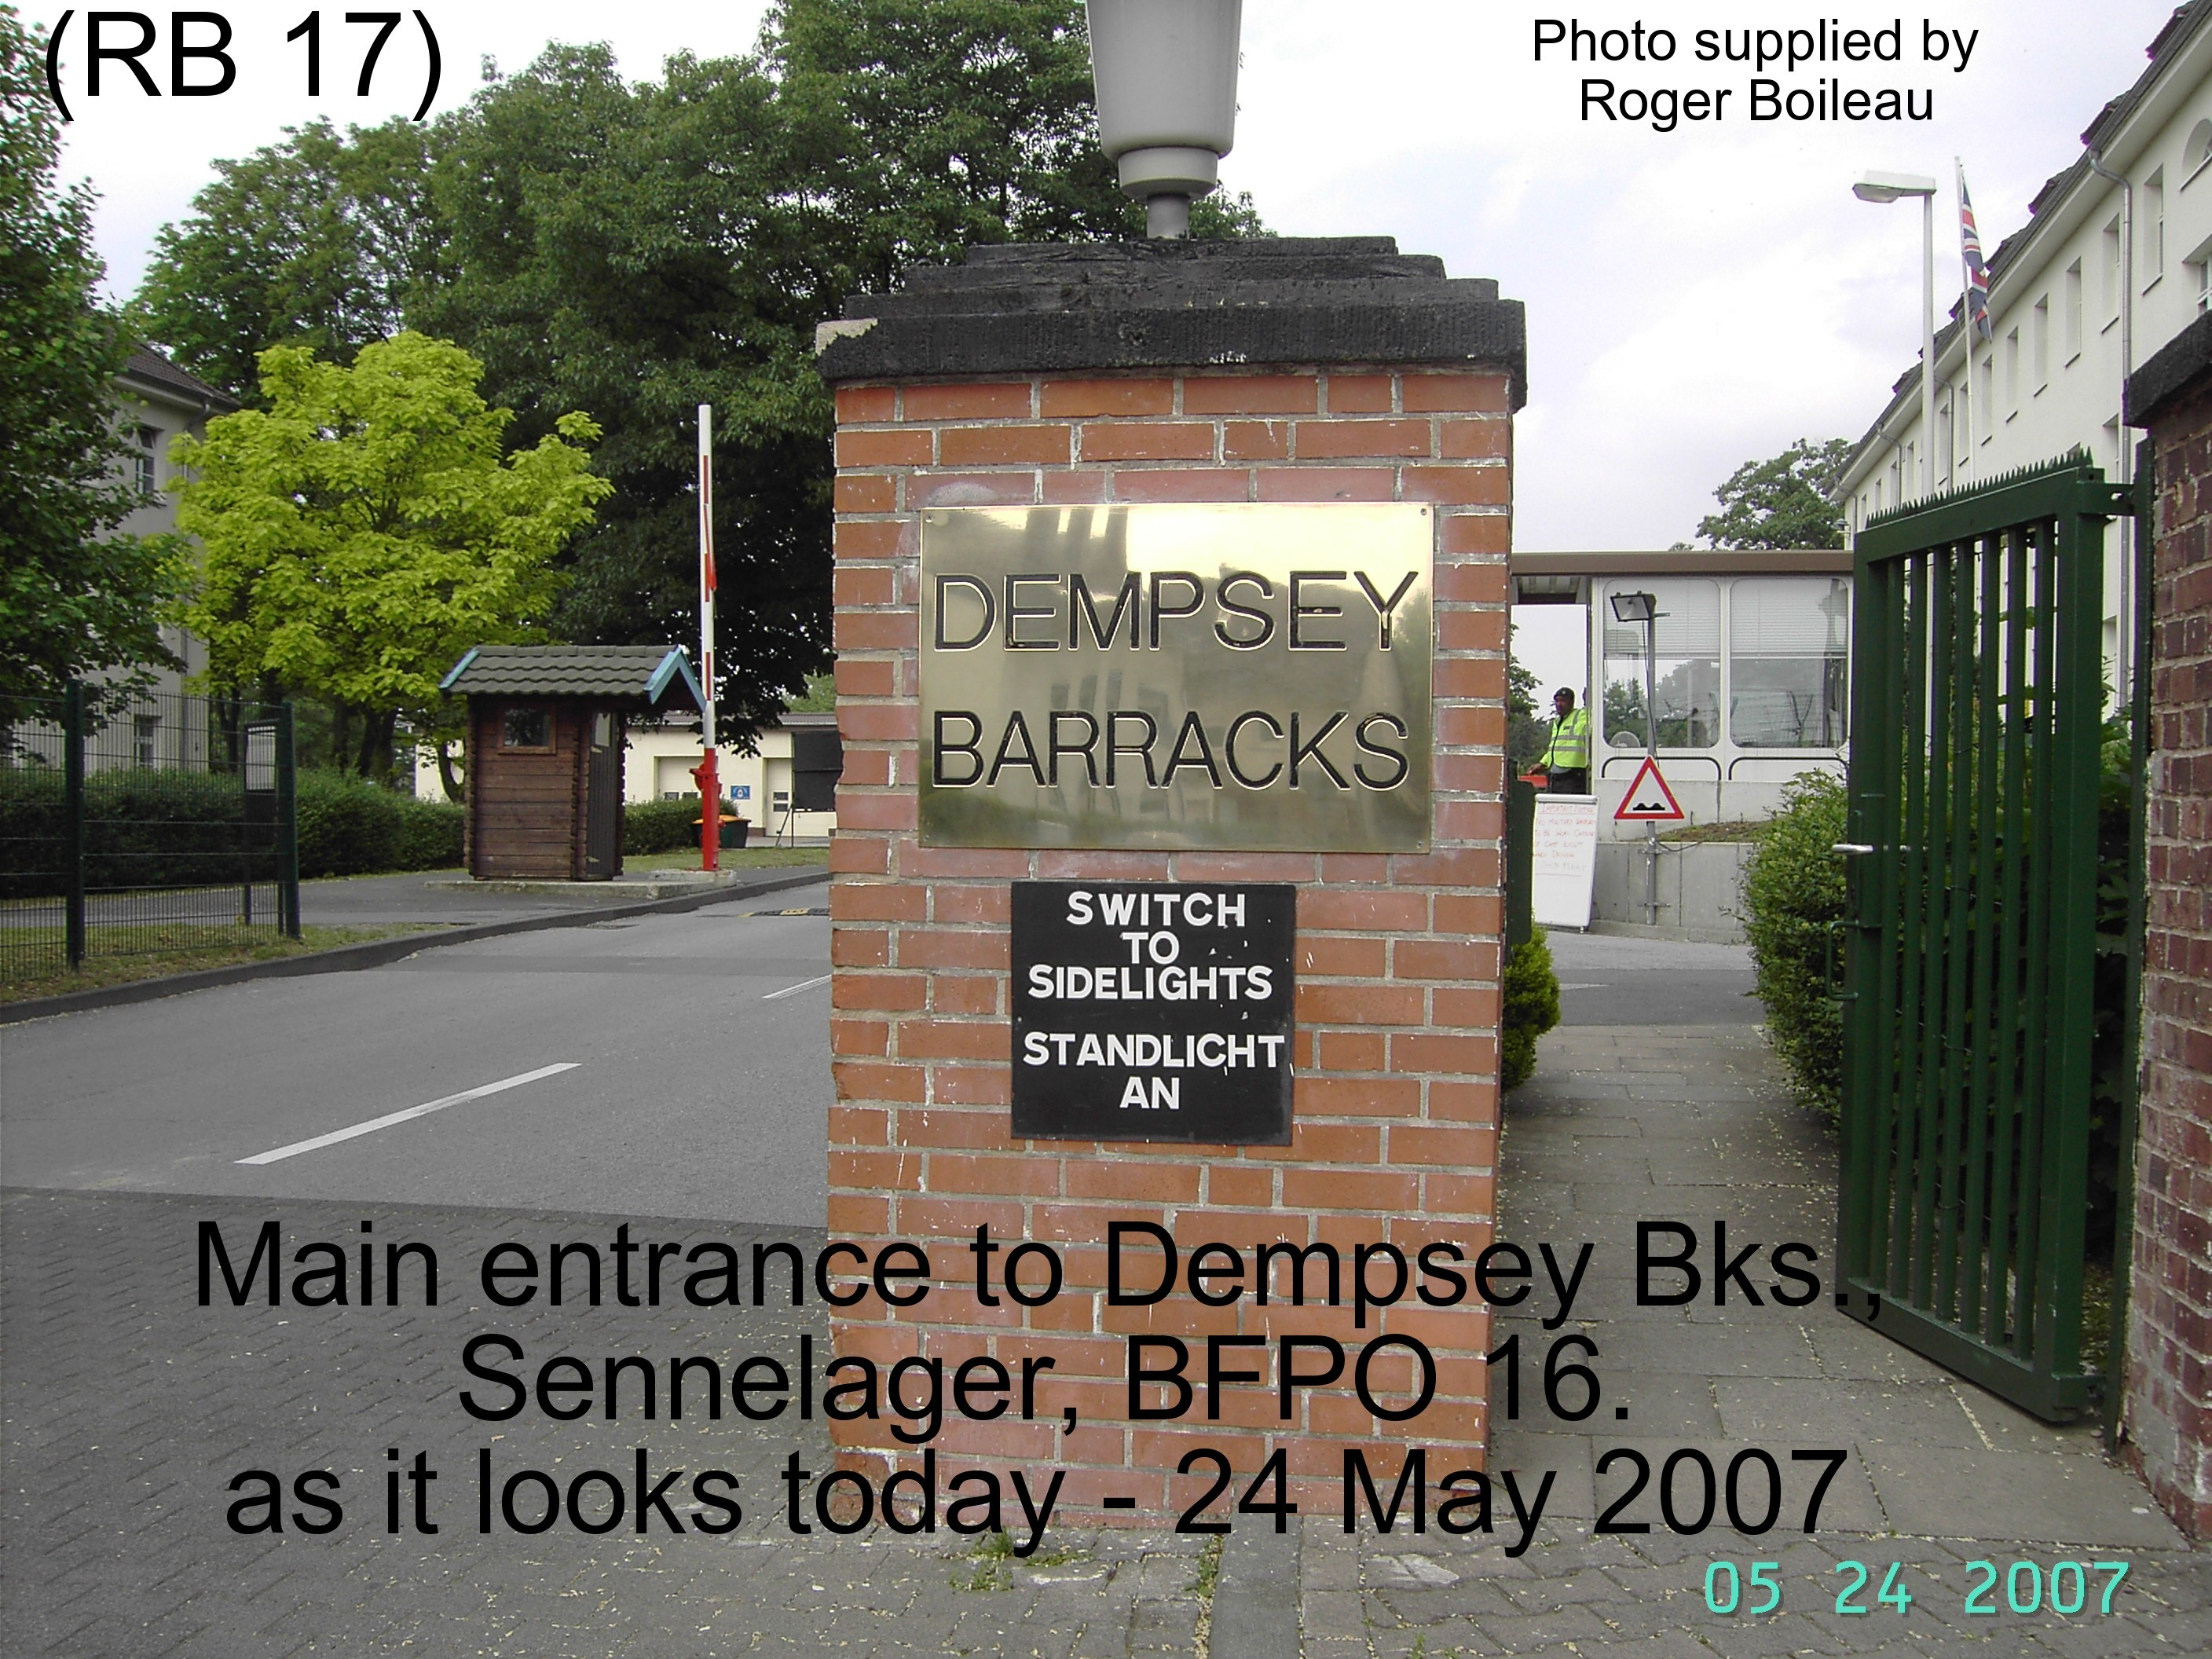 rb-17-main-entrance-to-dempsey-bks.jpg